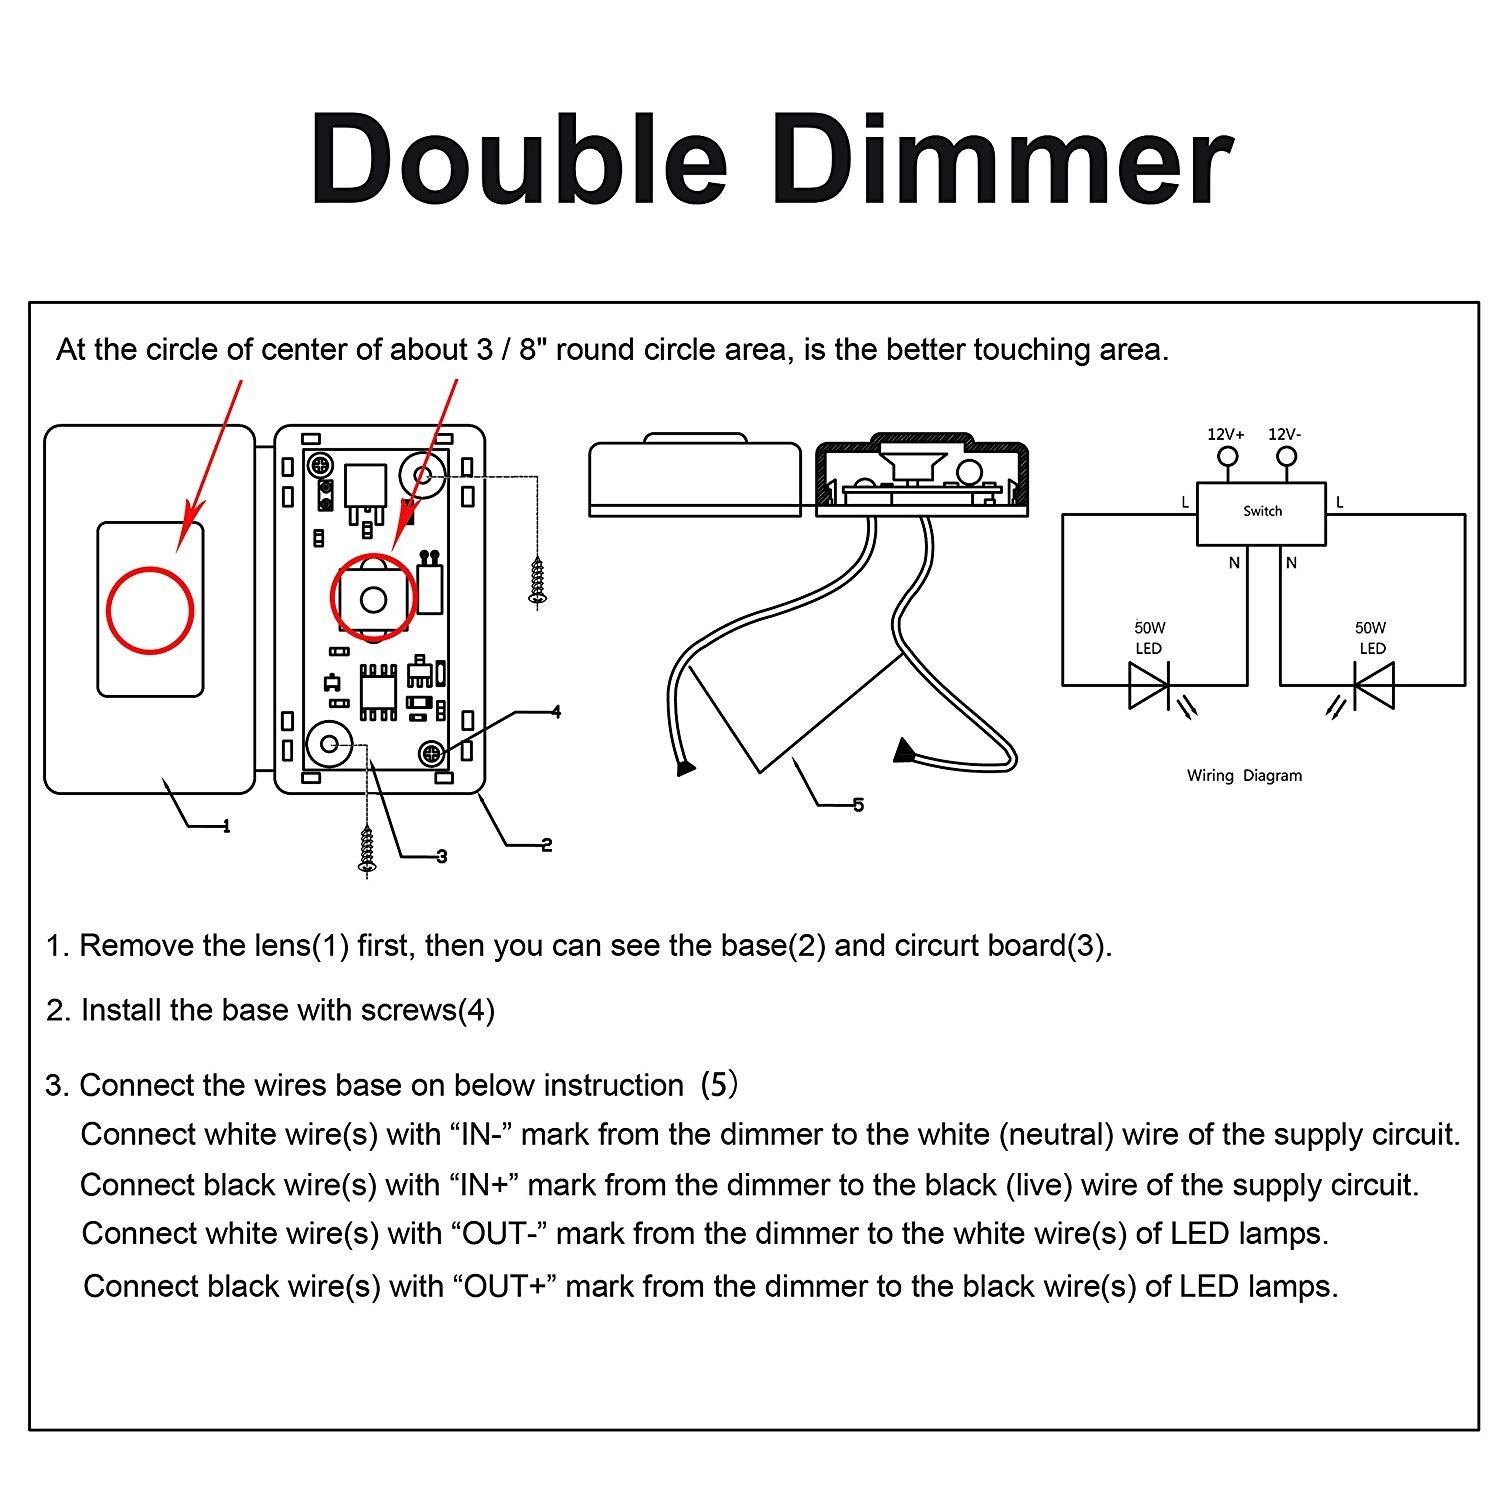 New Wiring Diagram Double Dimmer Switch Diagram Diagramtemplate Diagramsample